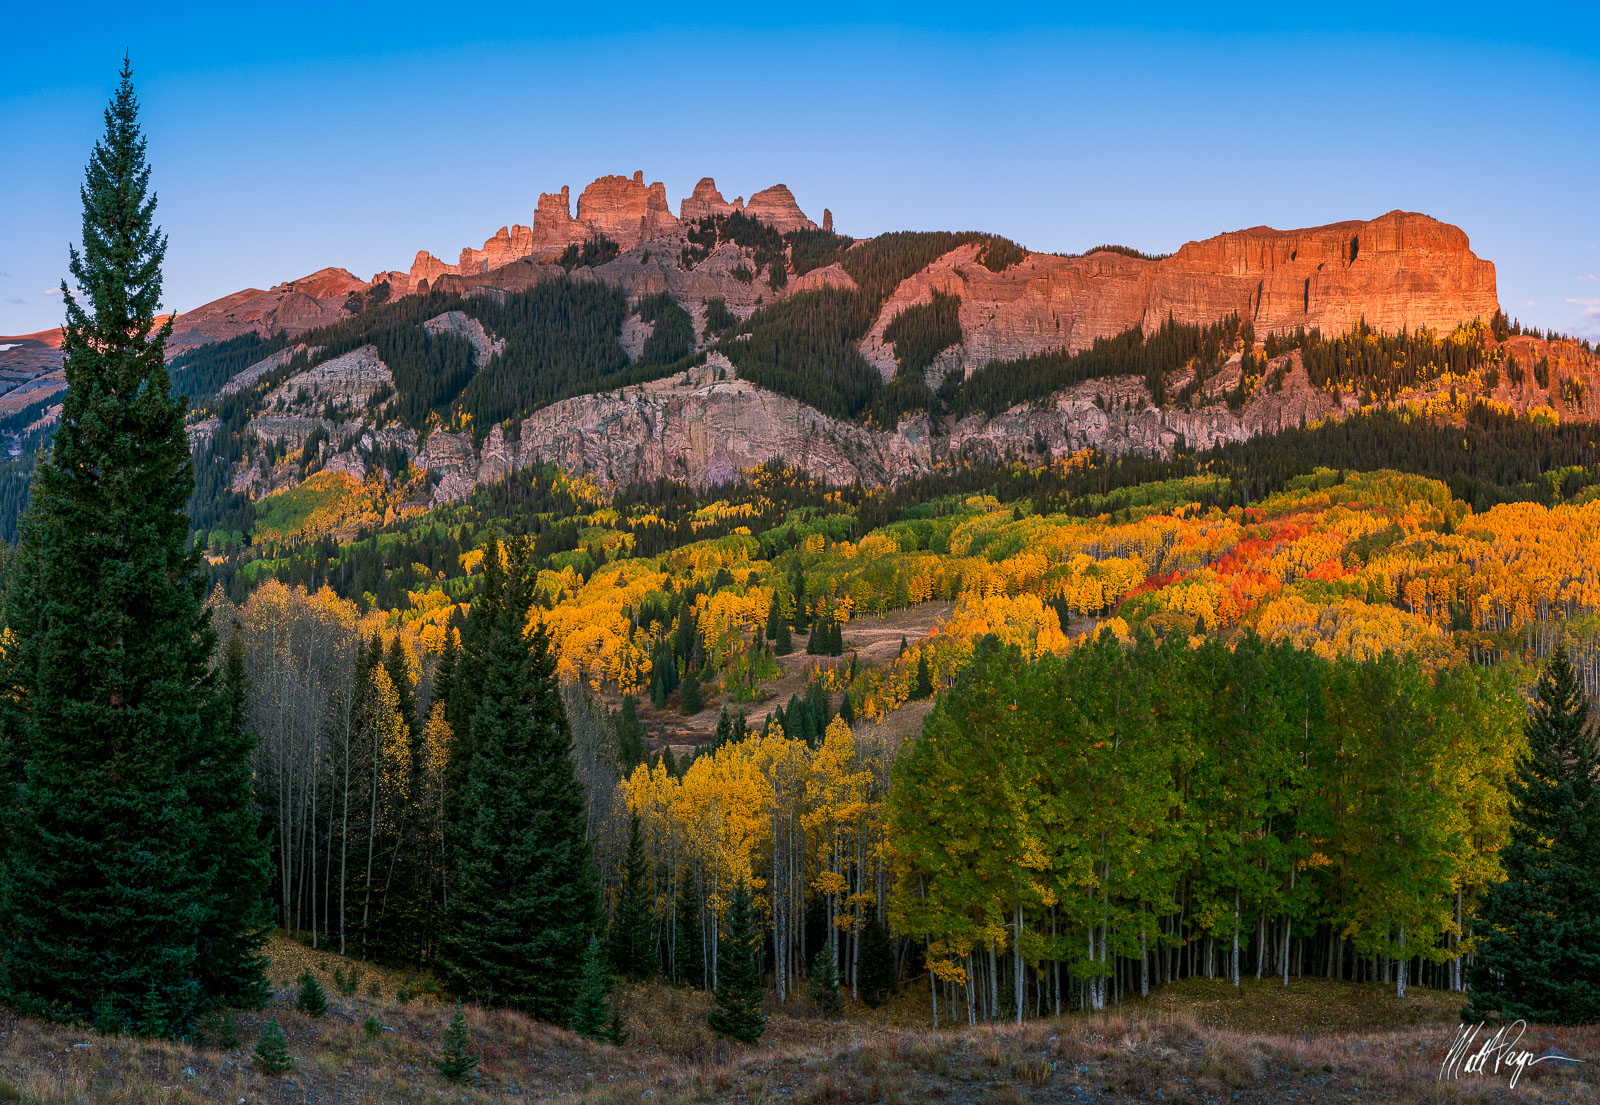 Aspen Trees, Autumn, Blue Hour, Colorado, Crested Butte, Fall Colors, Gunnison, Mountains, Ohio Pass, Sunrise, The Castles, West Elk Mountains, photo